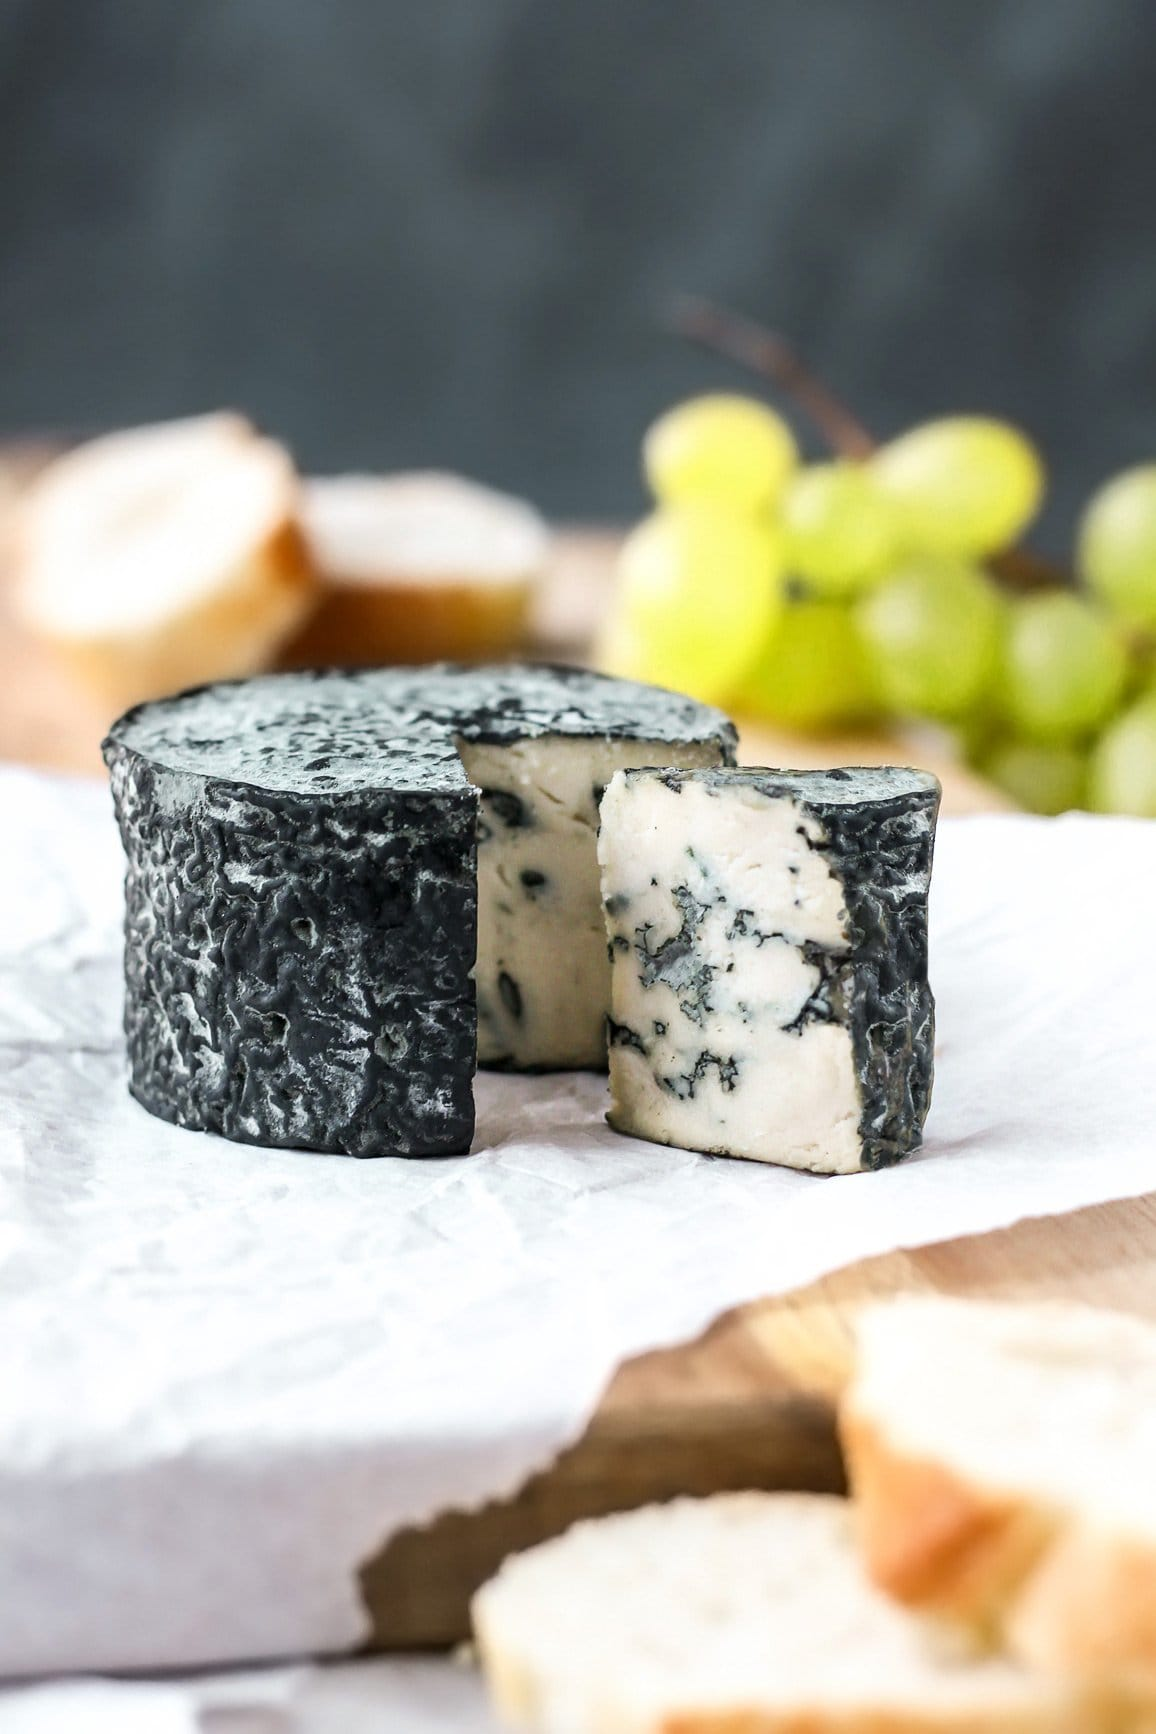 Blue Dor Blue Cheese: Benefits and Recipes 27